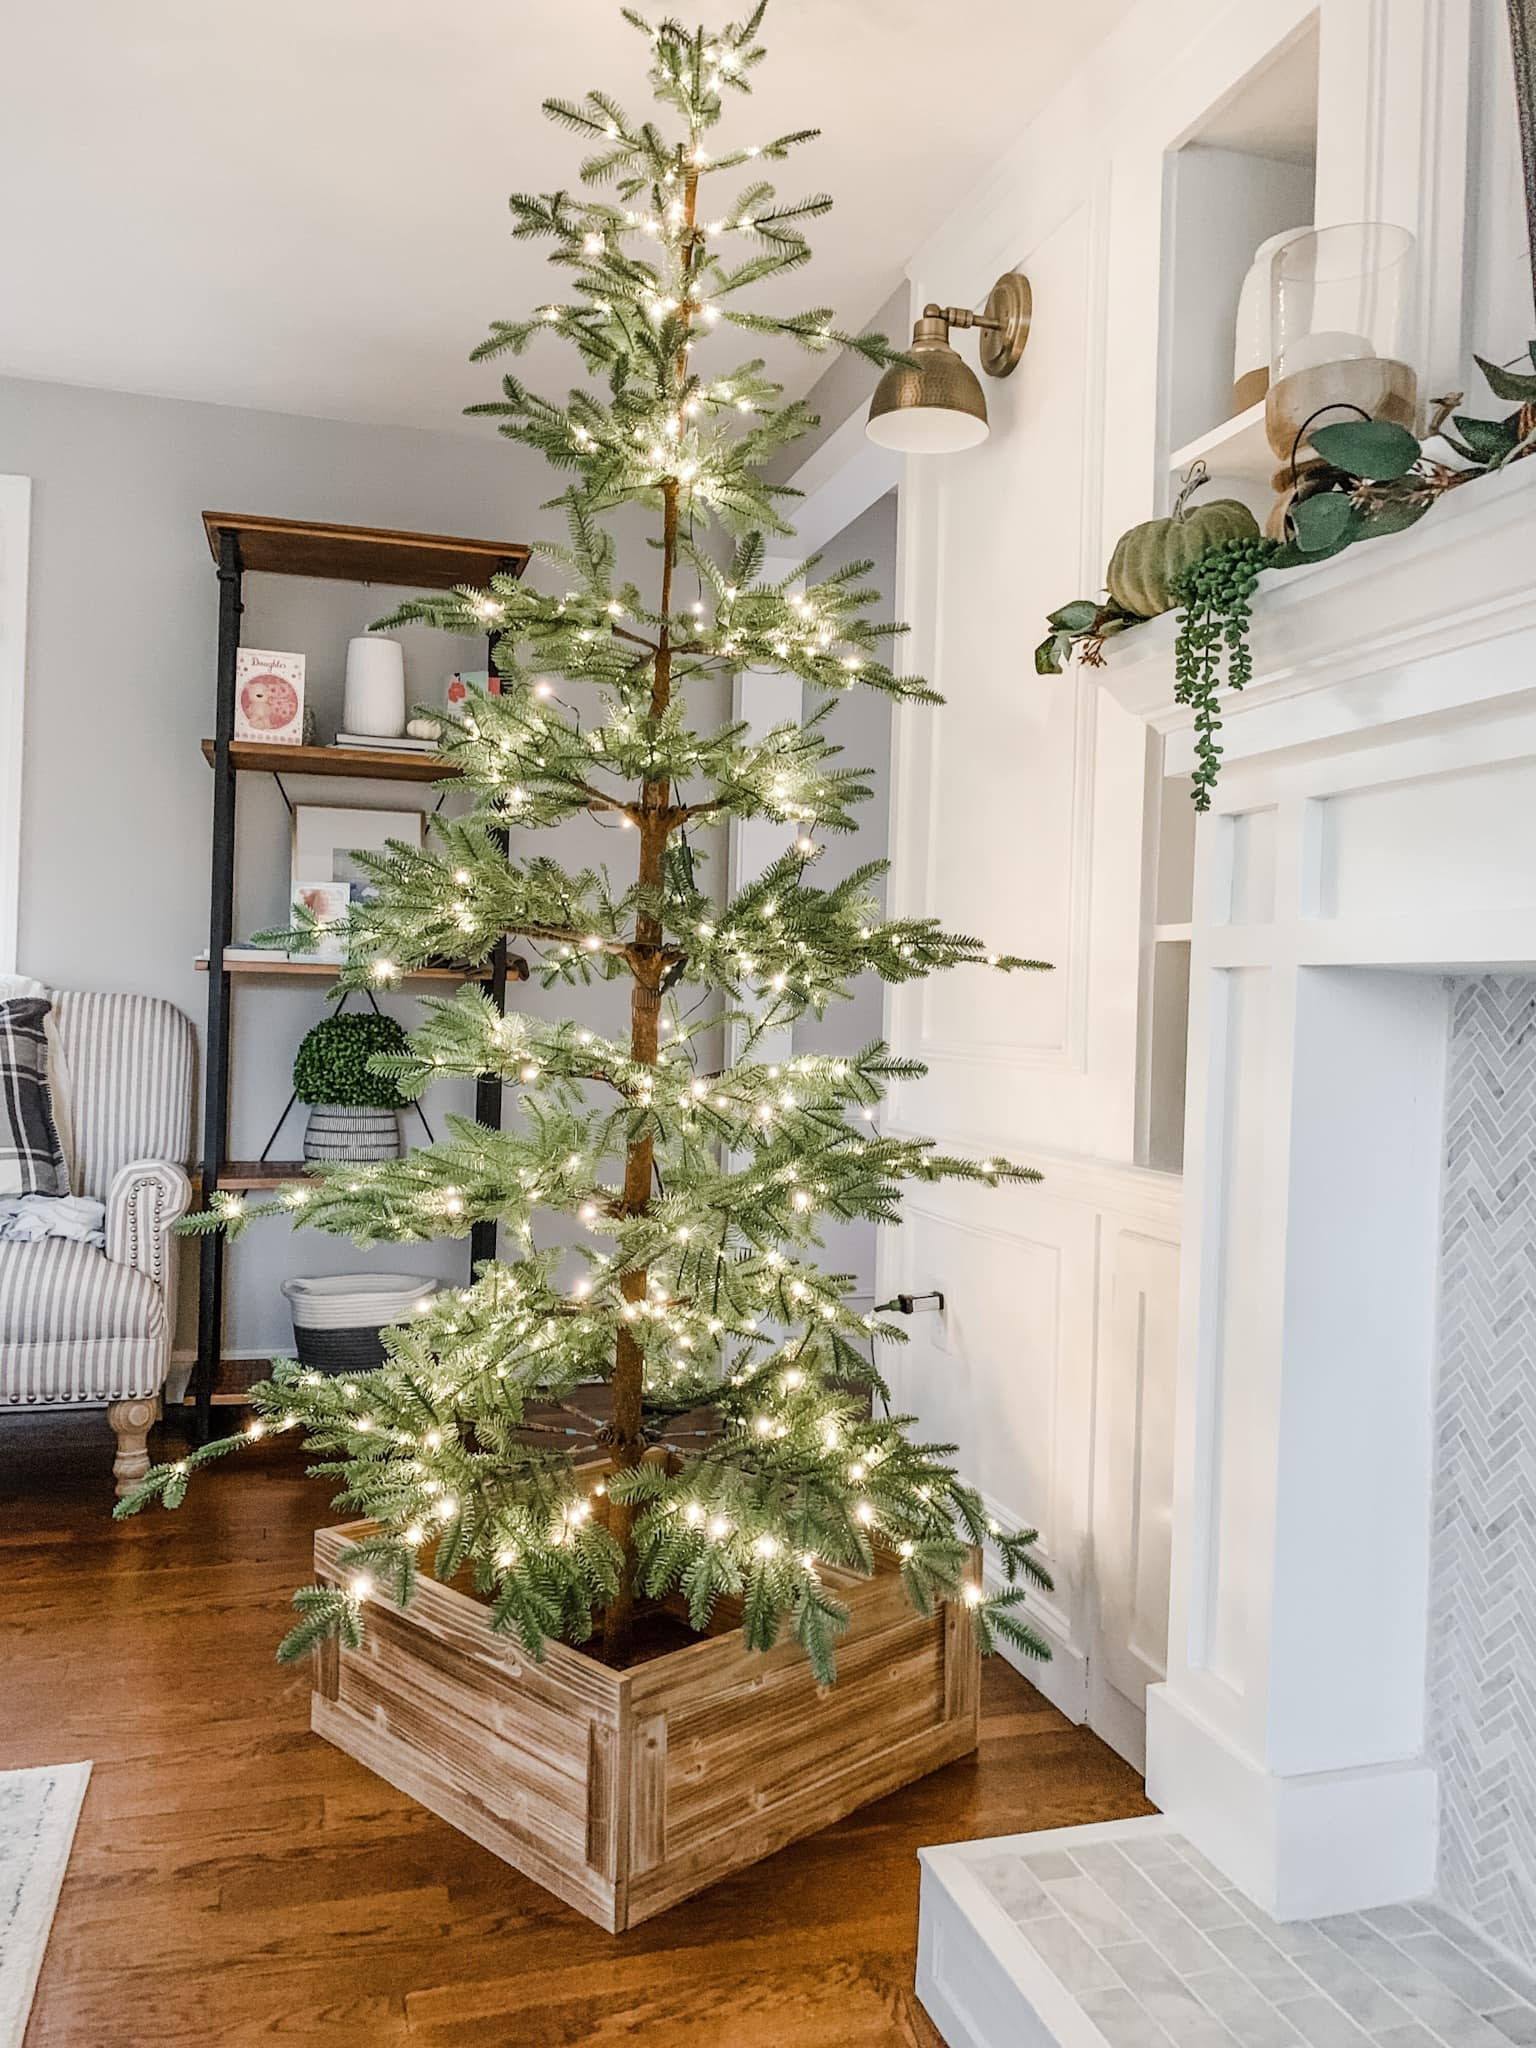 This Balsam Hill Artificial Christmas Tree is a simplistic, gorgeous tree that's perfect for classic, minimal holiday decor